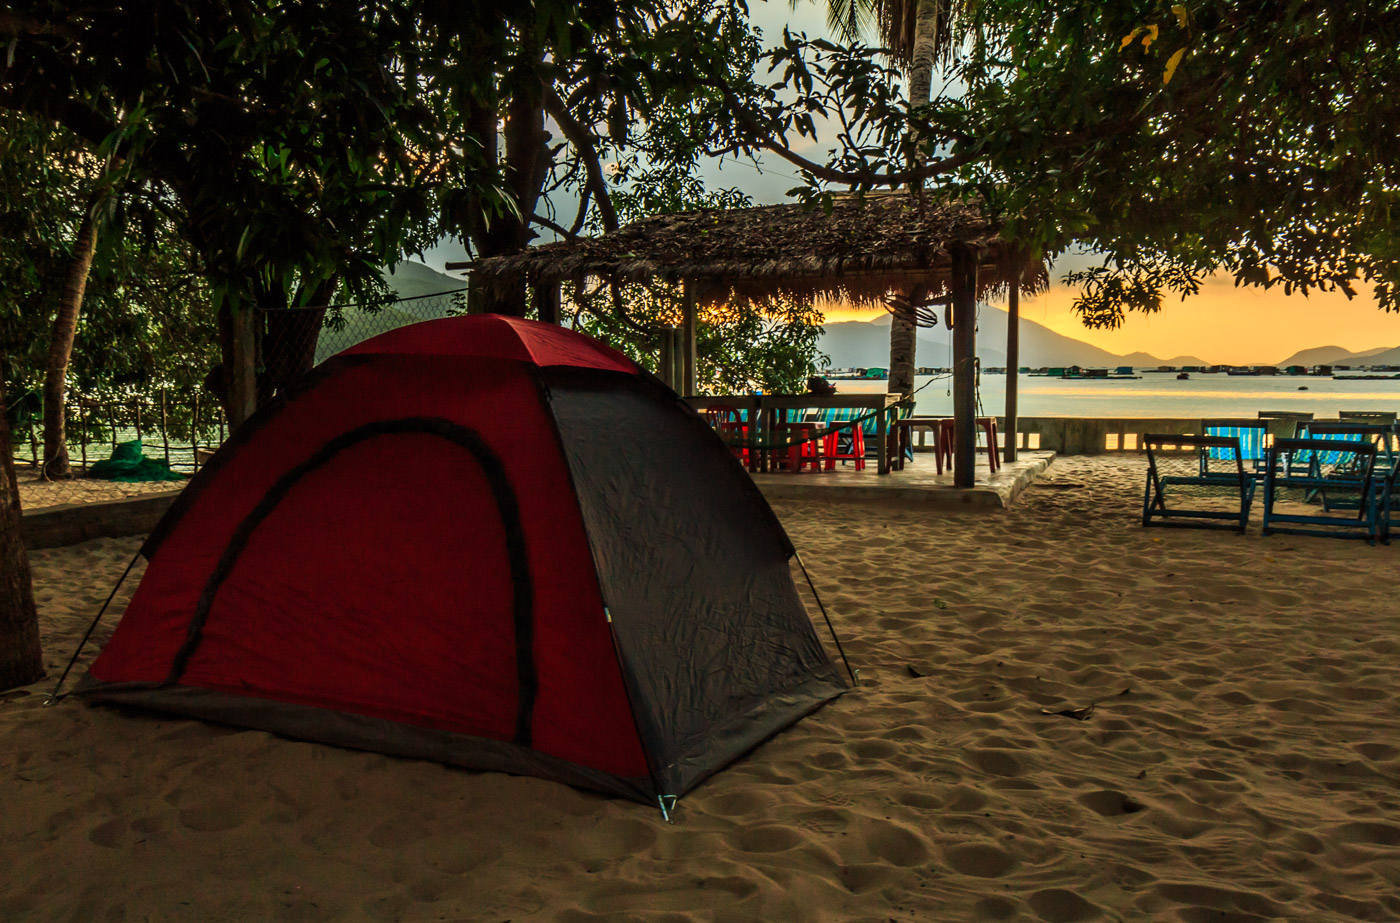 I set up my tent on the beach.